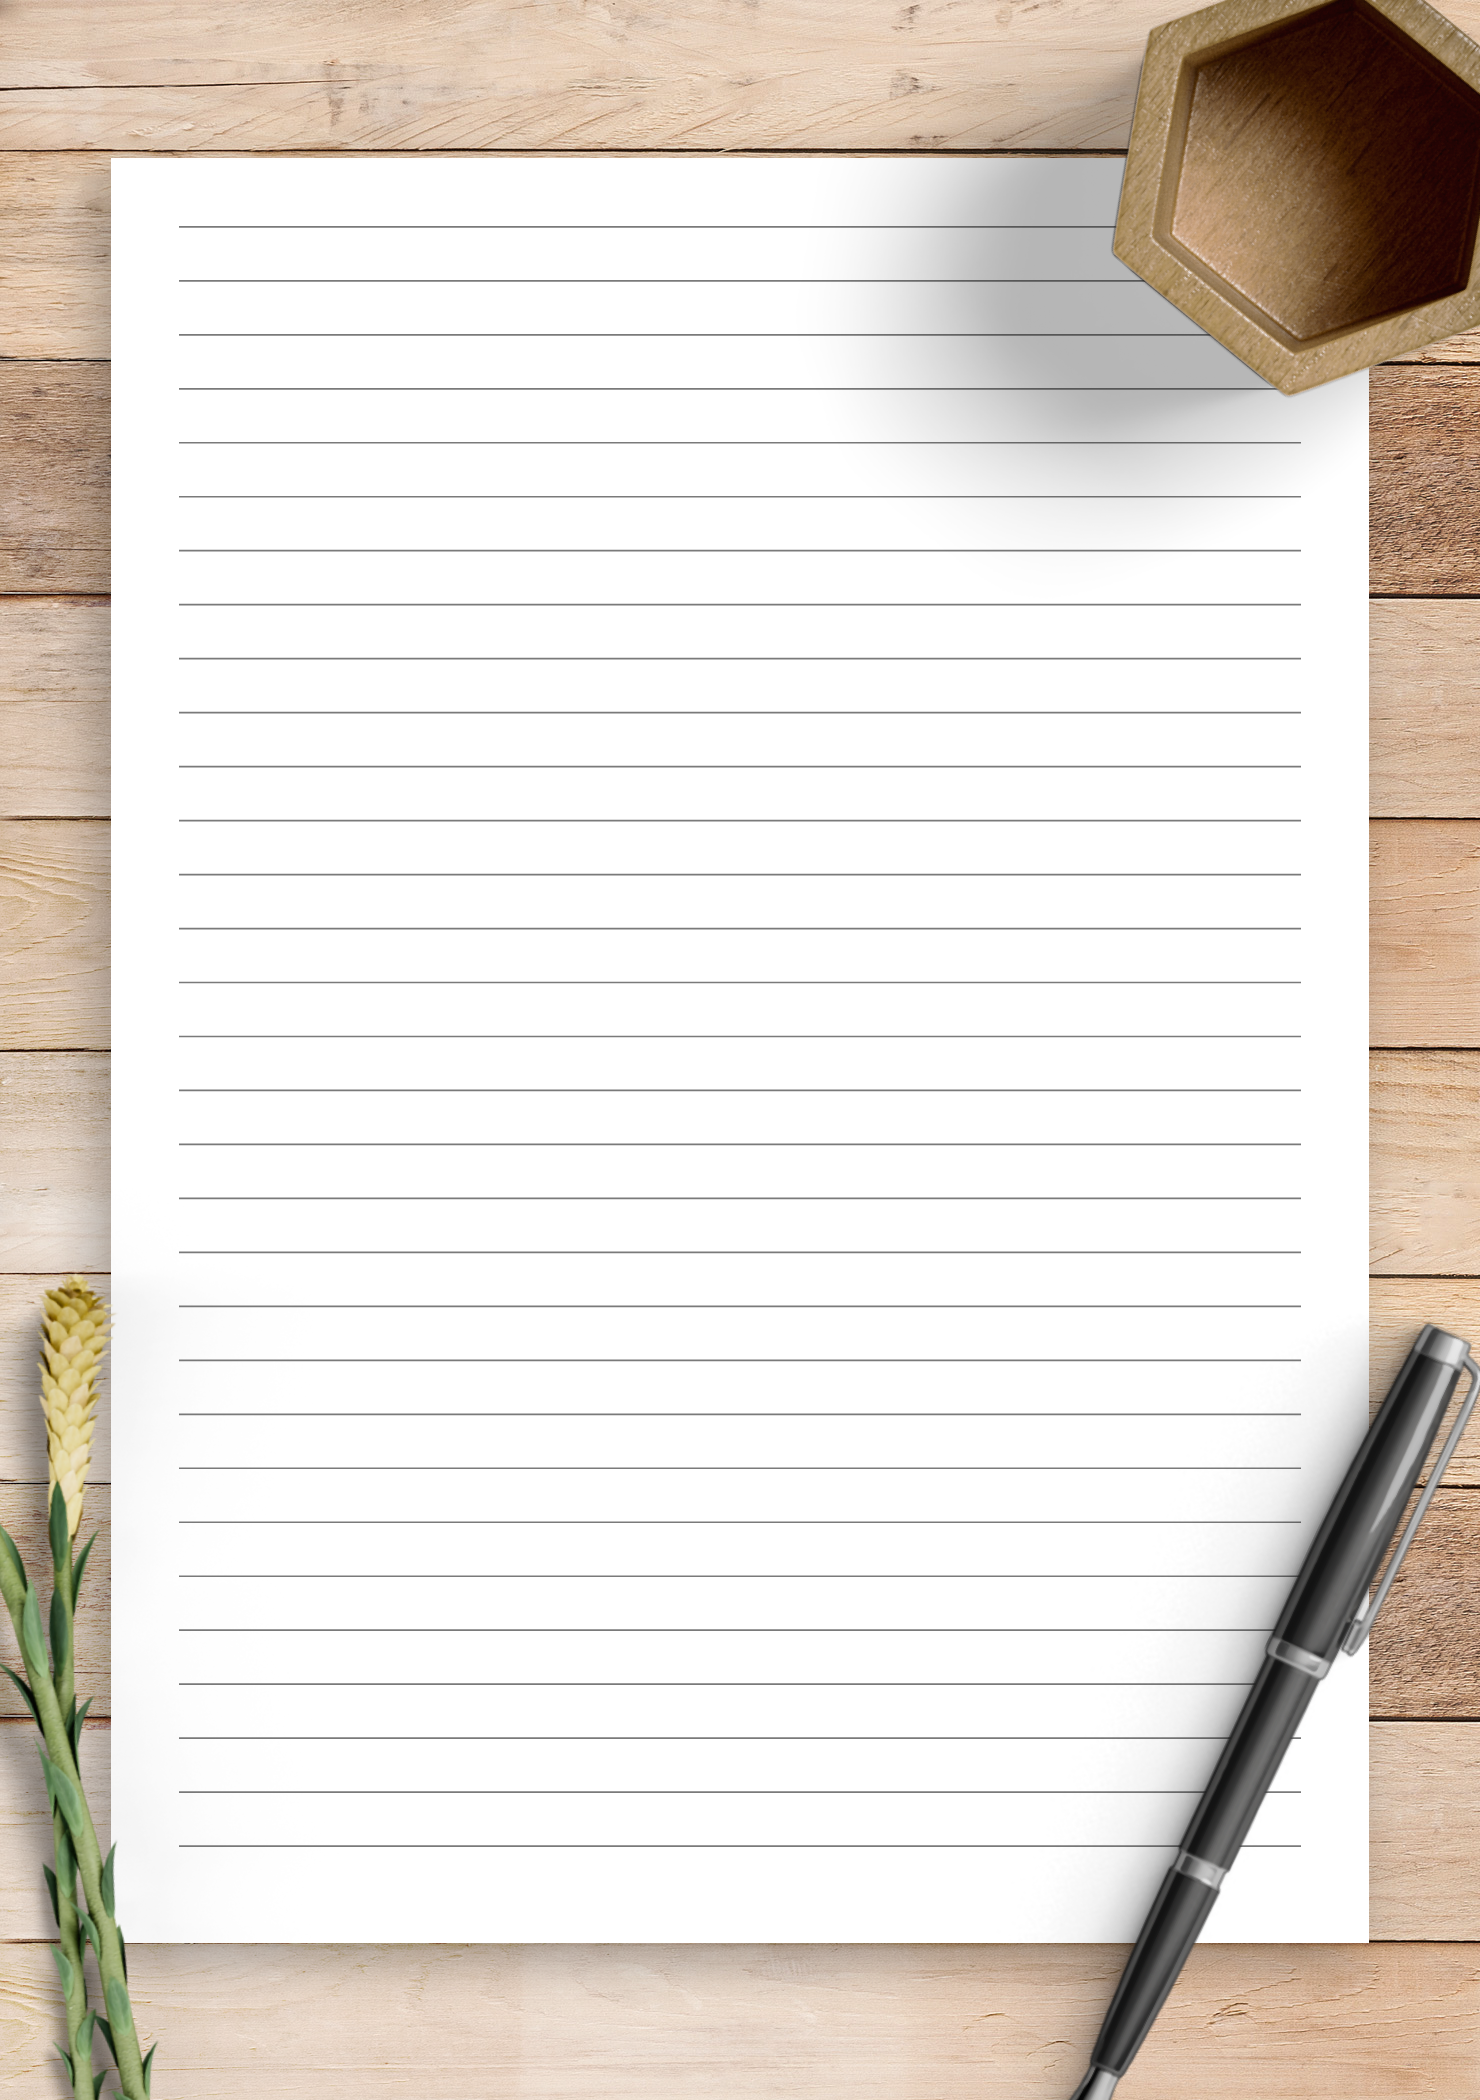 Download Printable Lined Paper Template - Narrow Ruled 1/4 ...